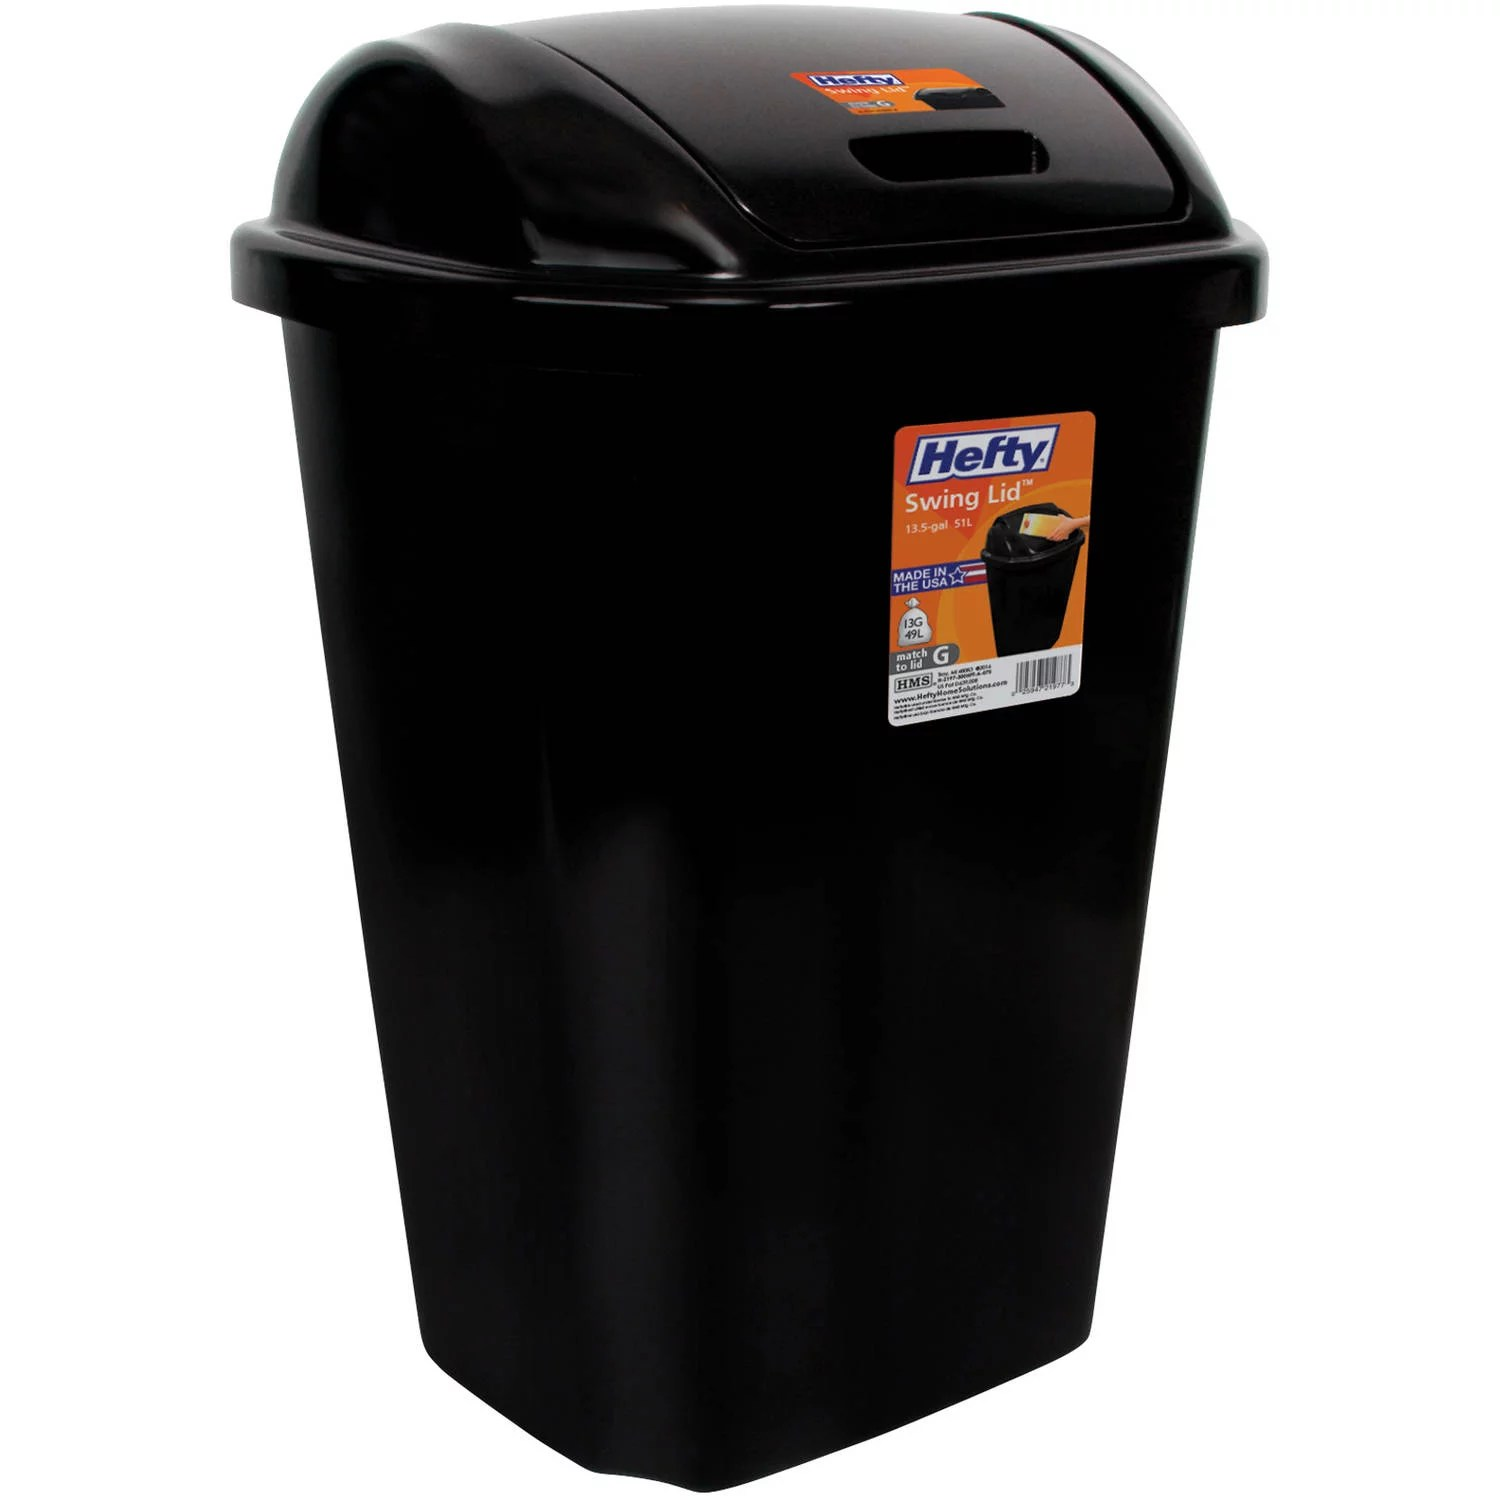 Kitchen Garbage Can With Lid Hefty Swing Lid 13 5 Gallon Trash Can Black Waste Basket